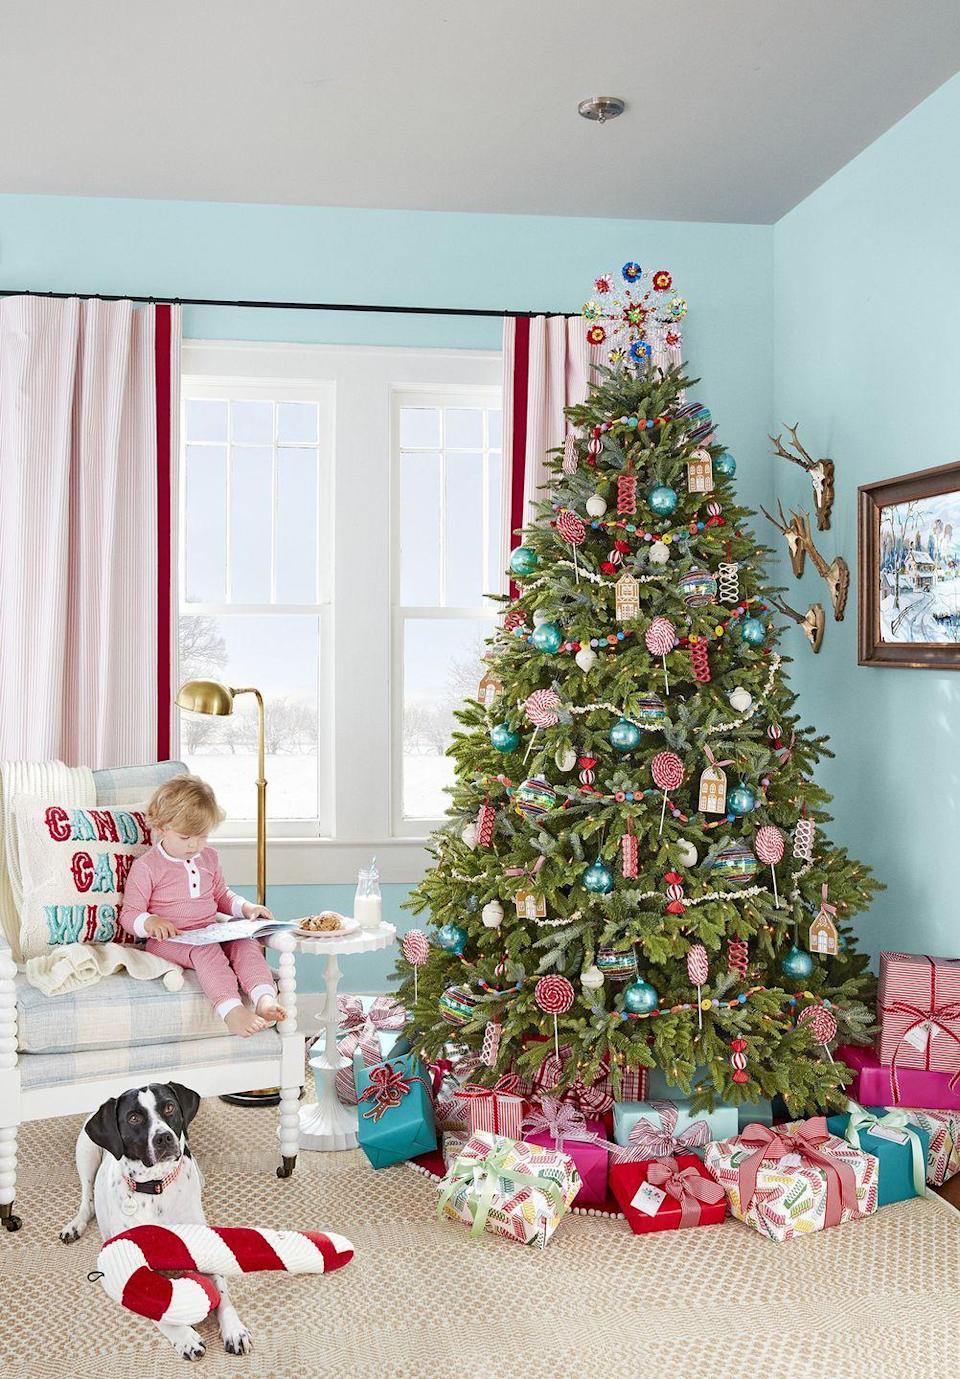 """<p>Who says you have to stick to red and green at Christmastime? This homeowner opted for lighter hues—even pinks, blues, and soft yellows—and managed to keep things looking festive. </p><p><a class=""""link rapid-noclick-resp"""" href=""""https://www.amazon.com/Northlight-Coated-Ribbon-Christmas-Ornaments/dp/B077QHG2LZ?tag=syn-yahoo-20&ascsubtag=%5Bartid%7C10050.g.1247%5Bsrc%7Cyahoo-us"""" rel=""""nofollow noopener"""" target=""""_blank"""" data-ylk=""""slk:SHOP CANDY CHRISTMAS ORNAMENTS"""">SHOP CANDY CHRISTMAS ORNAMENTS </a></p>"""